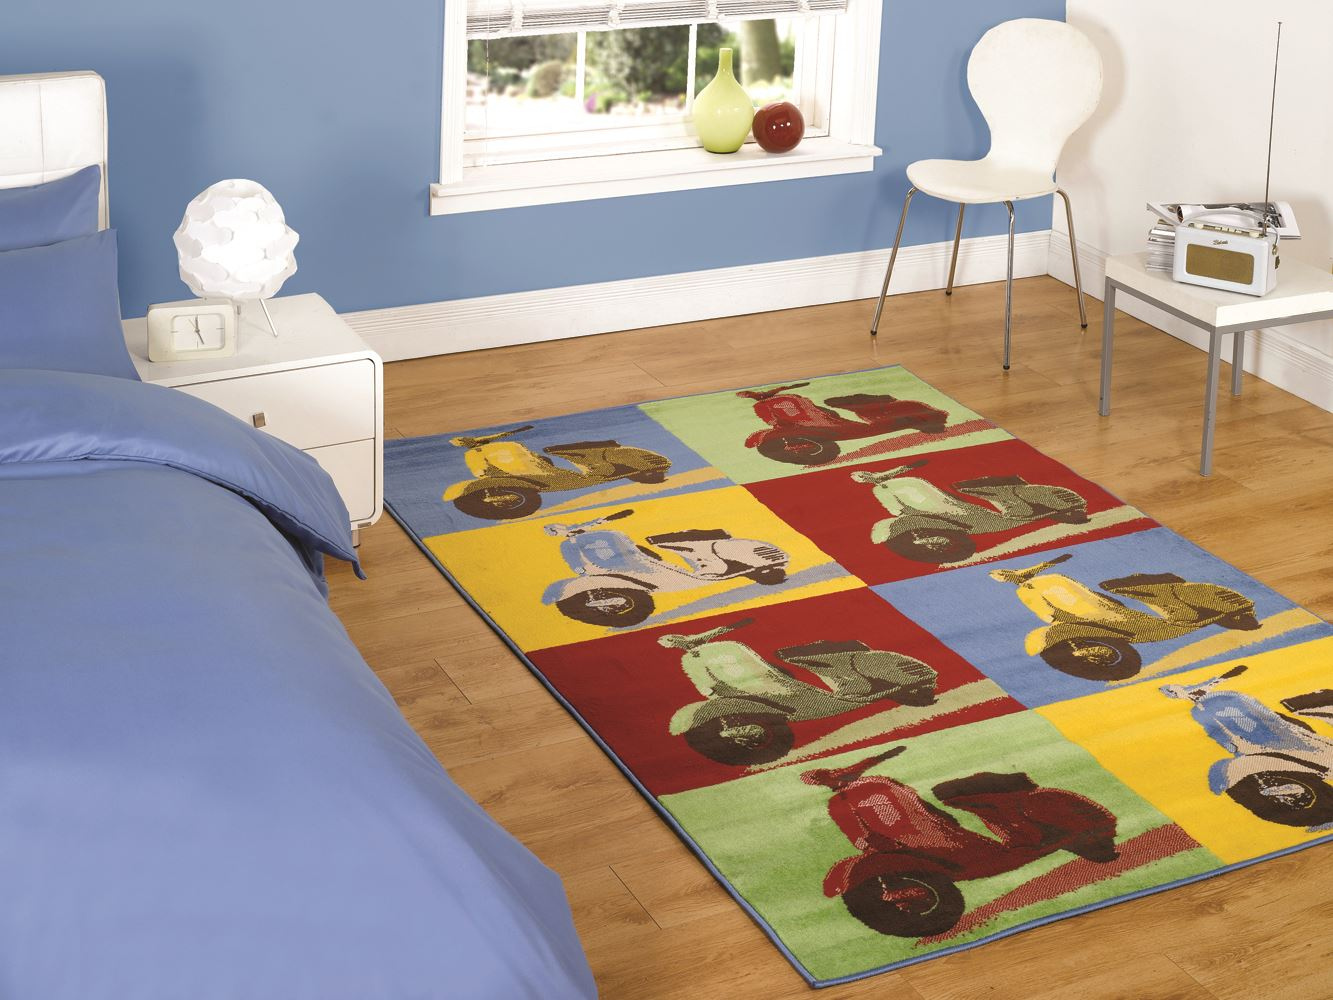 Retro Funky Rug Range By Flair Rugs Teenager Childrens Bedroom Floor Bright B